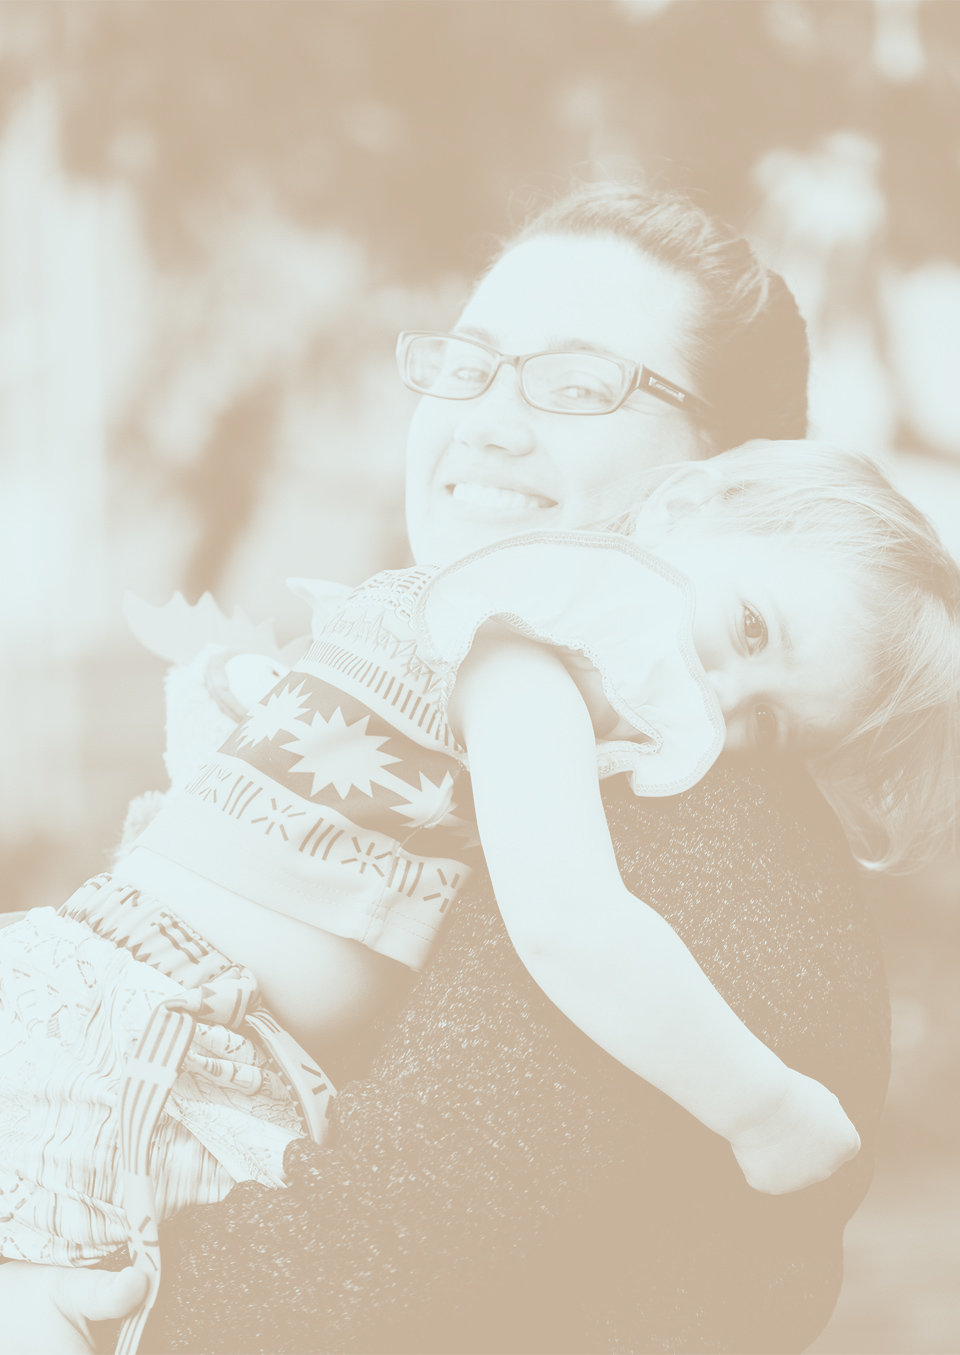 A smiling woman holding a child.